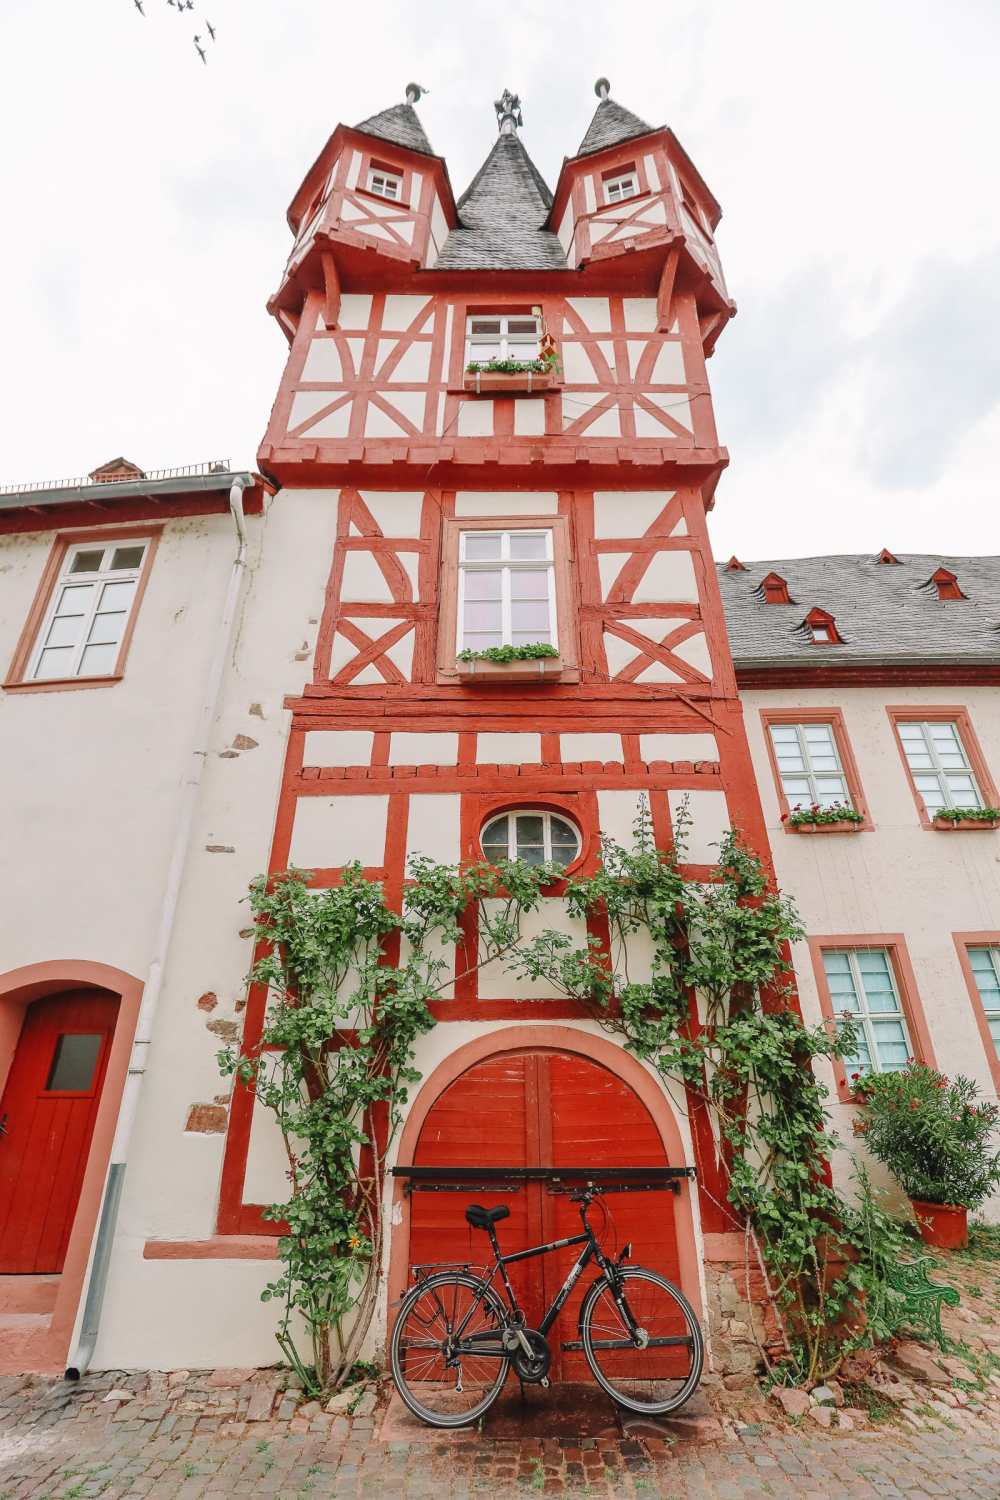 The Beautiful German Town Of Bacharach (64)